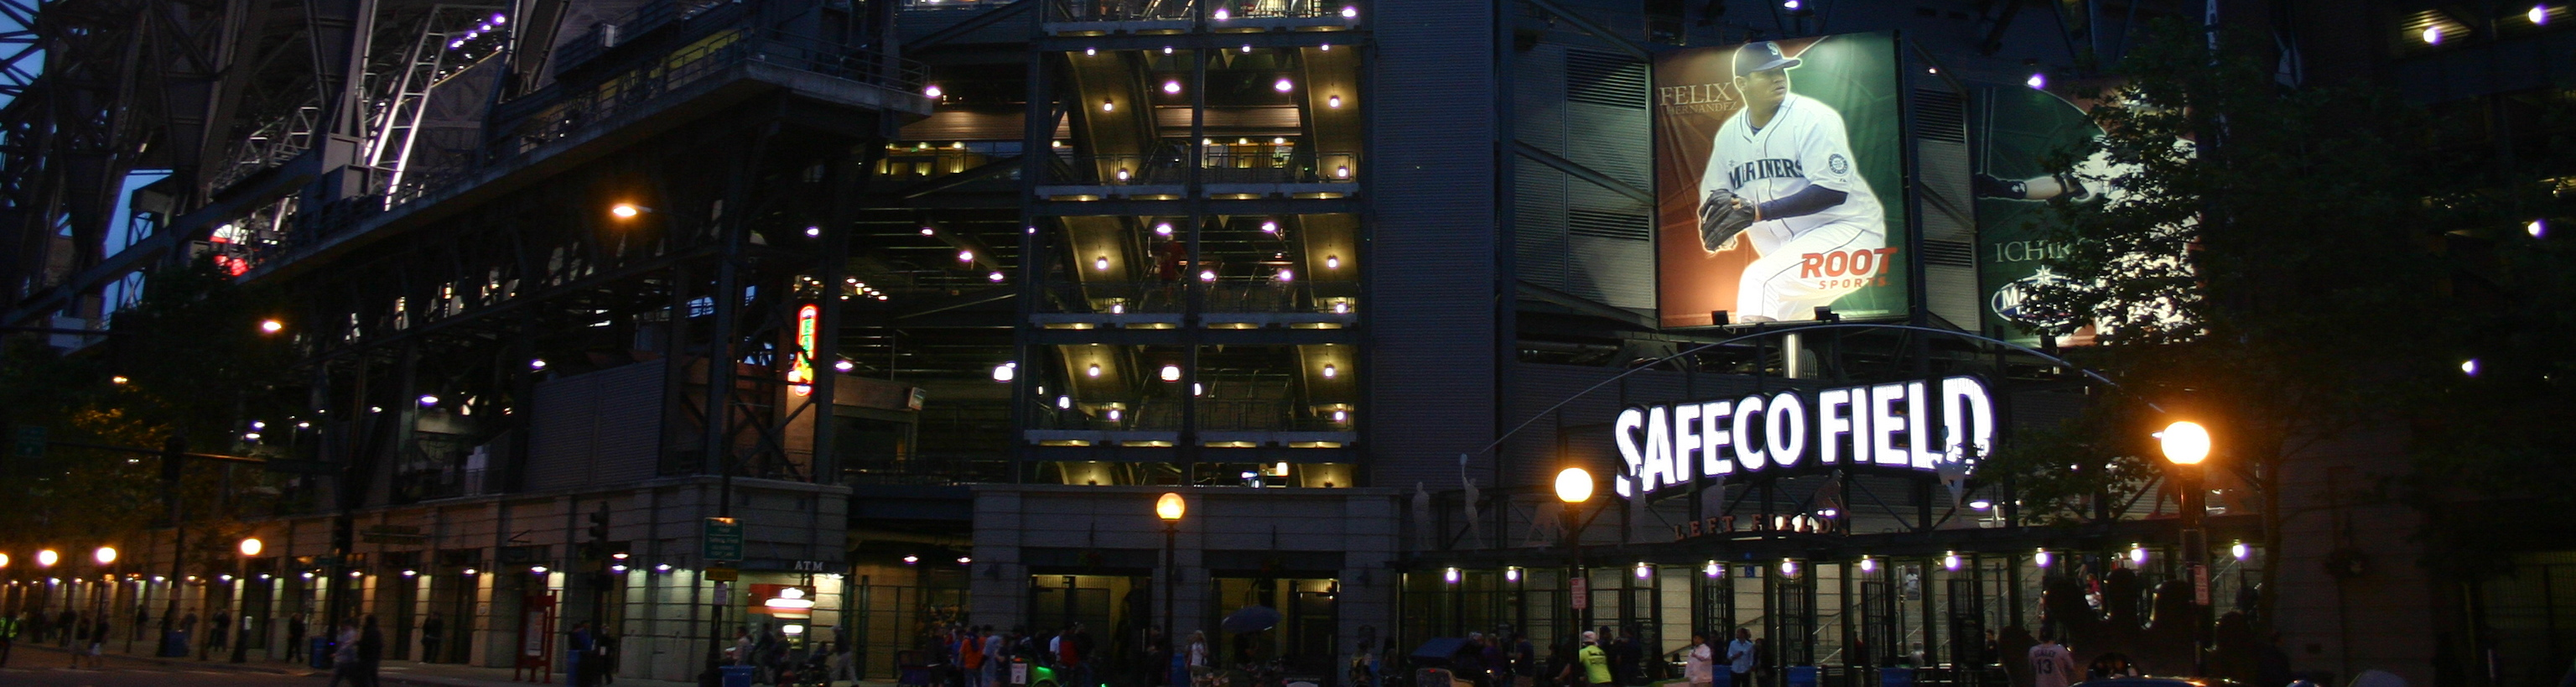 Safeco_Field_Exterior_Night.jpg